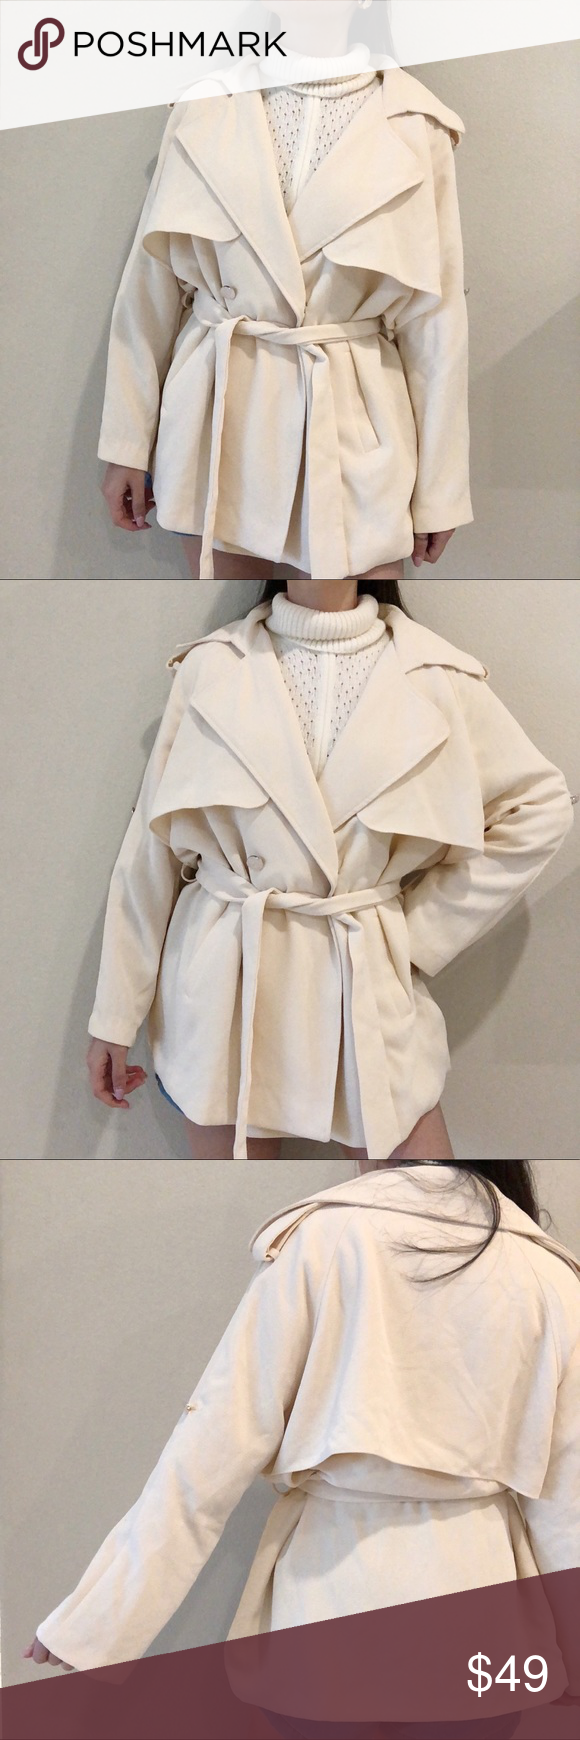 78a3949709 Vintage Flowy Cream Tie-waist Trench Jacket Im 5'2 and 107 for reference  Marked S Will fit S-L Vintage Jackets & Coats